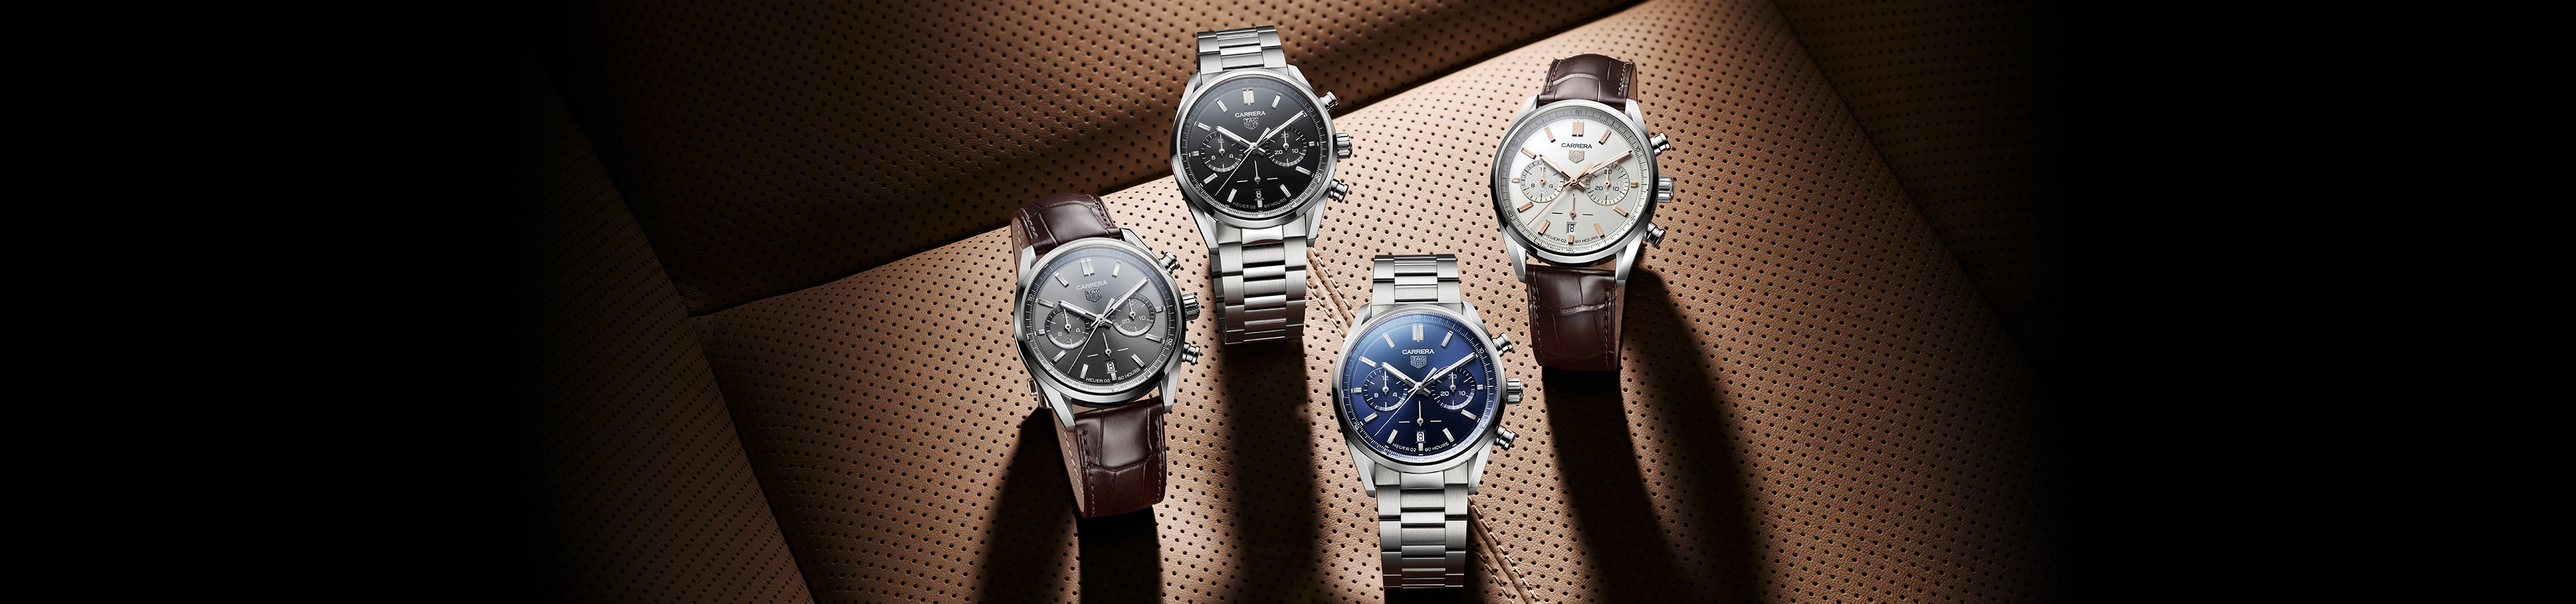 TAG HEUER BEYOND THE 160TH